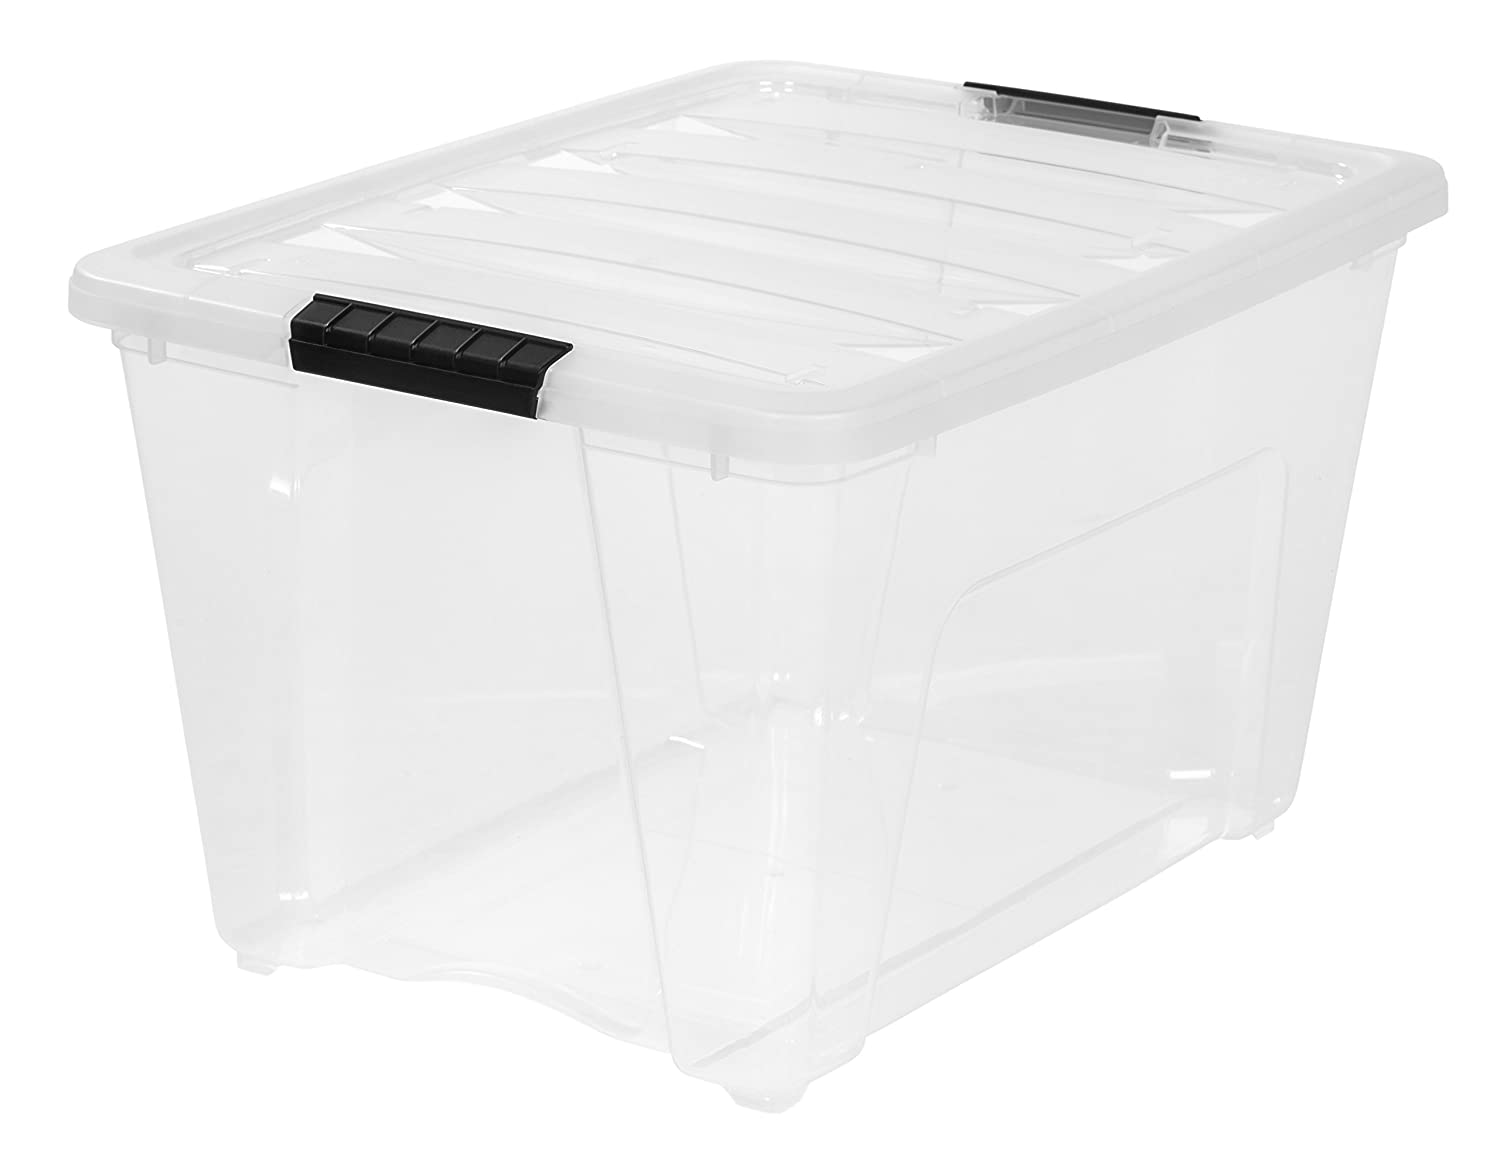 Stackable Box With Lid Bin 53 Quart Large Plastic Storage